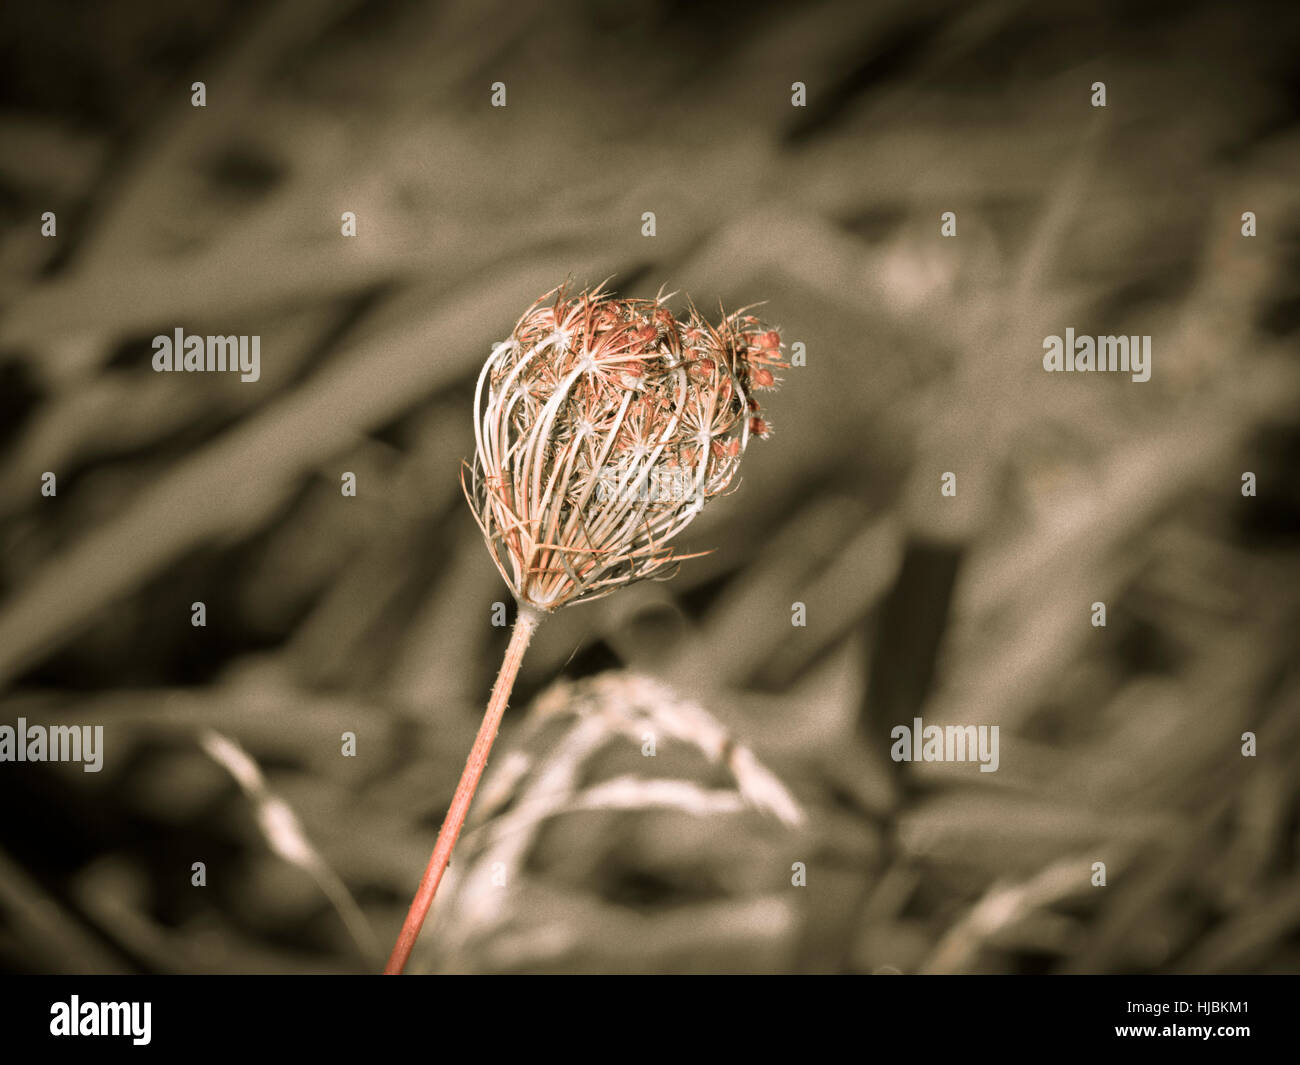 Dried flower - Stock Image